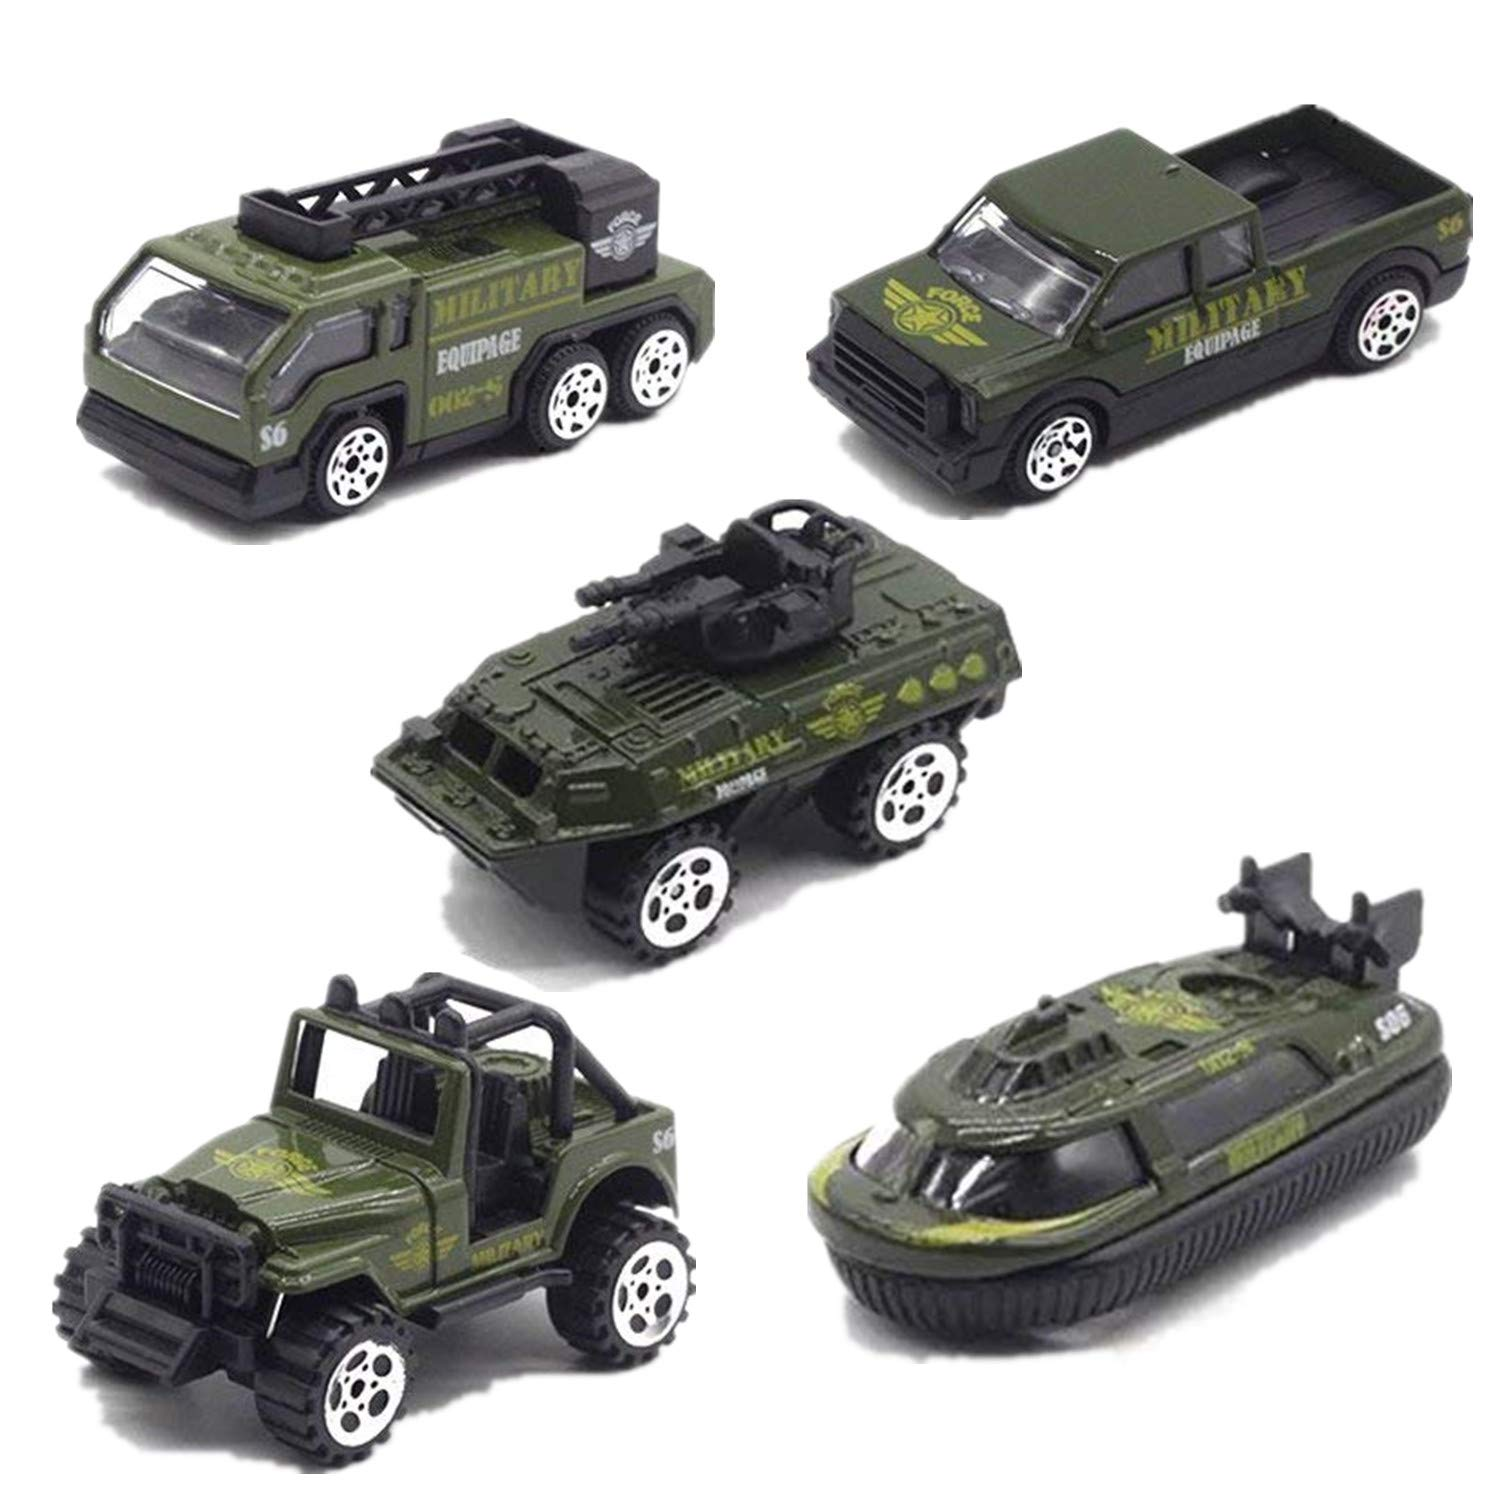 Toy Cars 5 Set Military Vehicles Die-cast Inertia Toy Play Set Vehicles for Kids VesipaFly